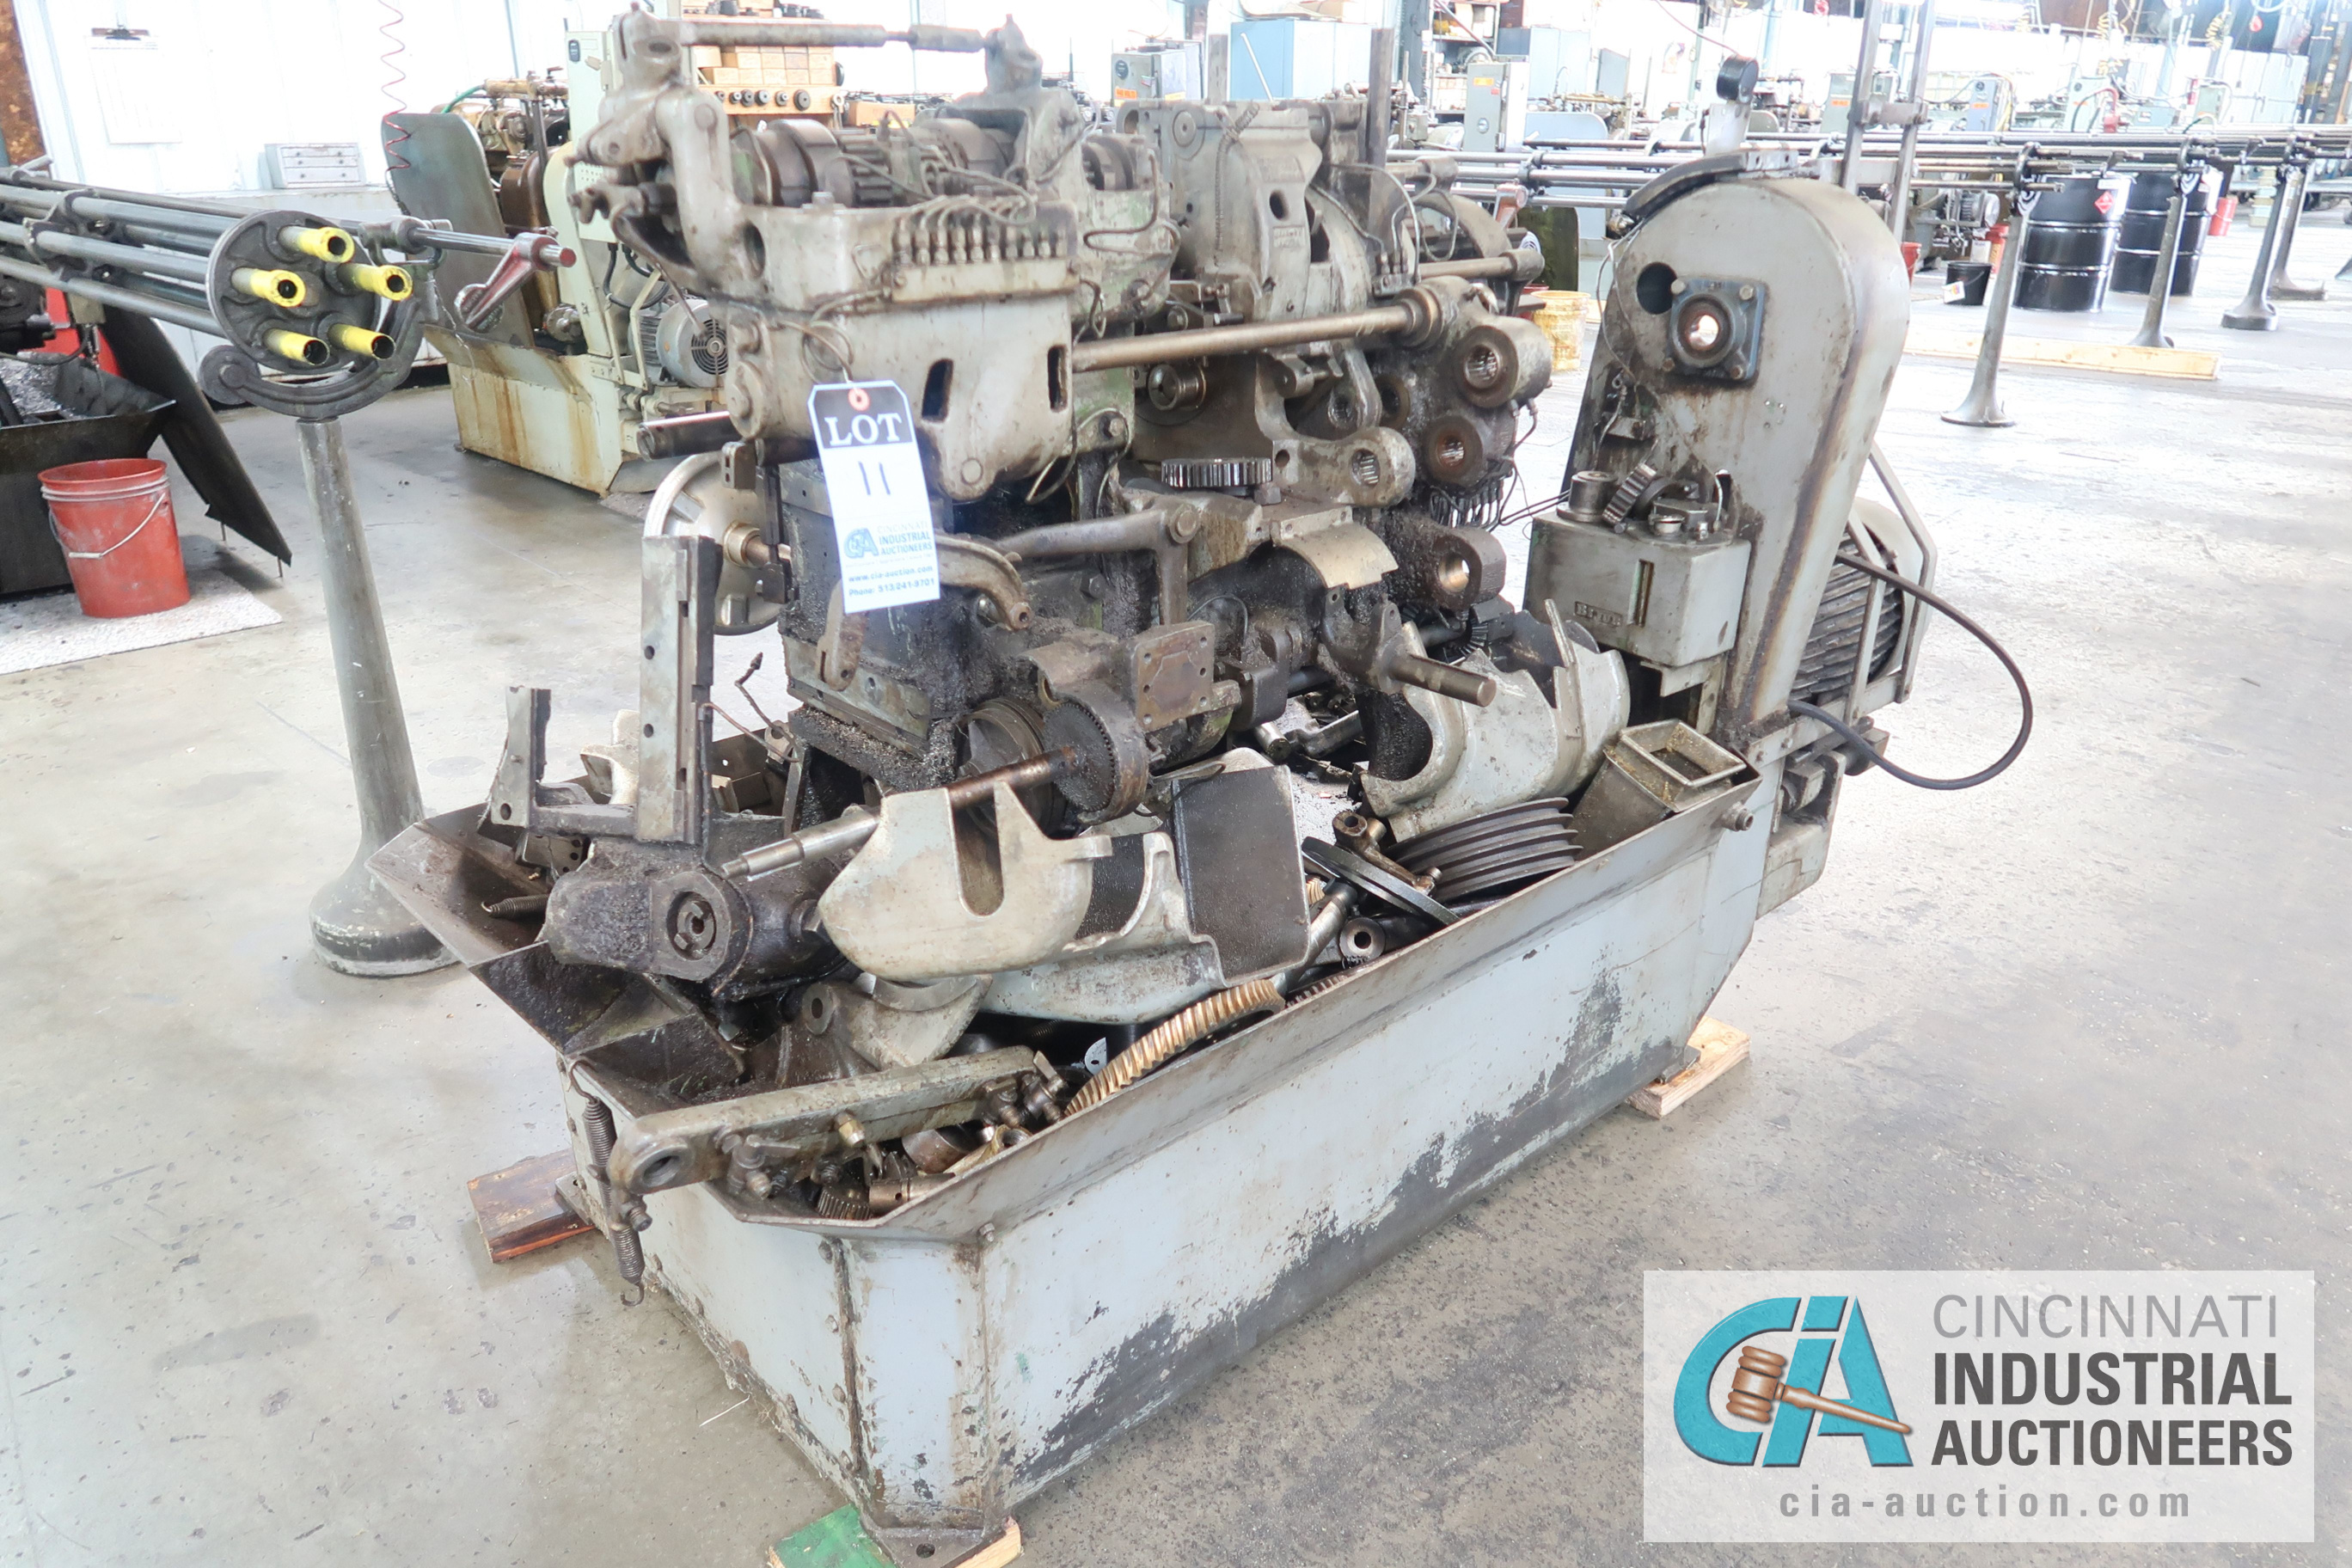 """Lot 11 - 3/4"""" DAVENPORT 5-SPINDLE SCREW MACHINE; S/N 7072 **THIS MACHINE IS PARTS ONLY SCREW MACHINE**"""